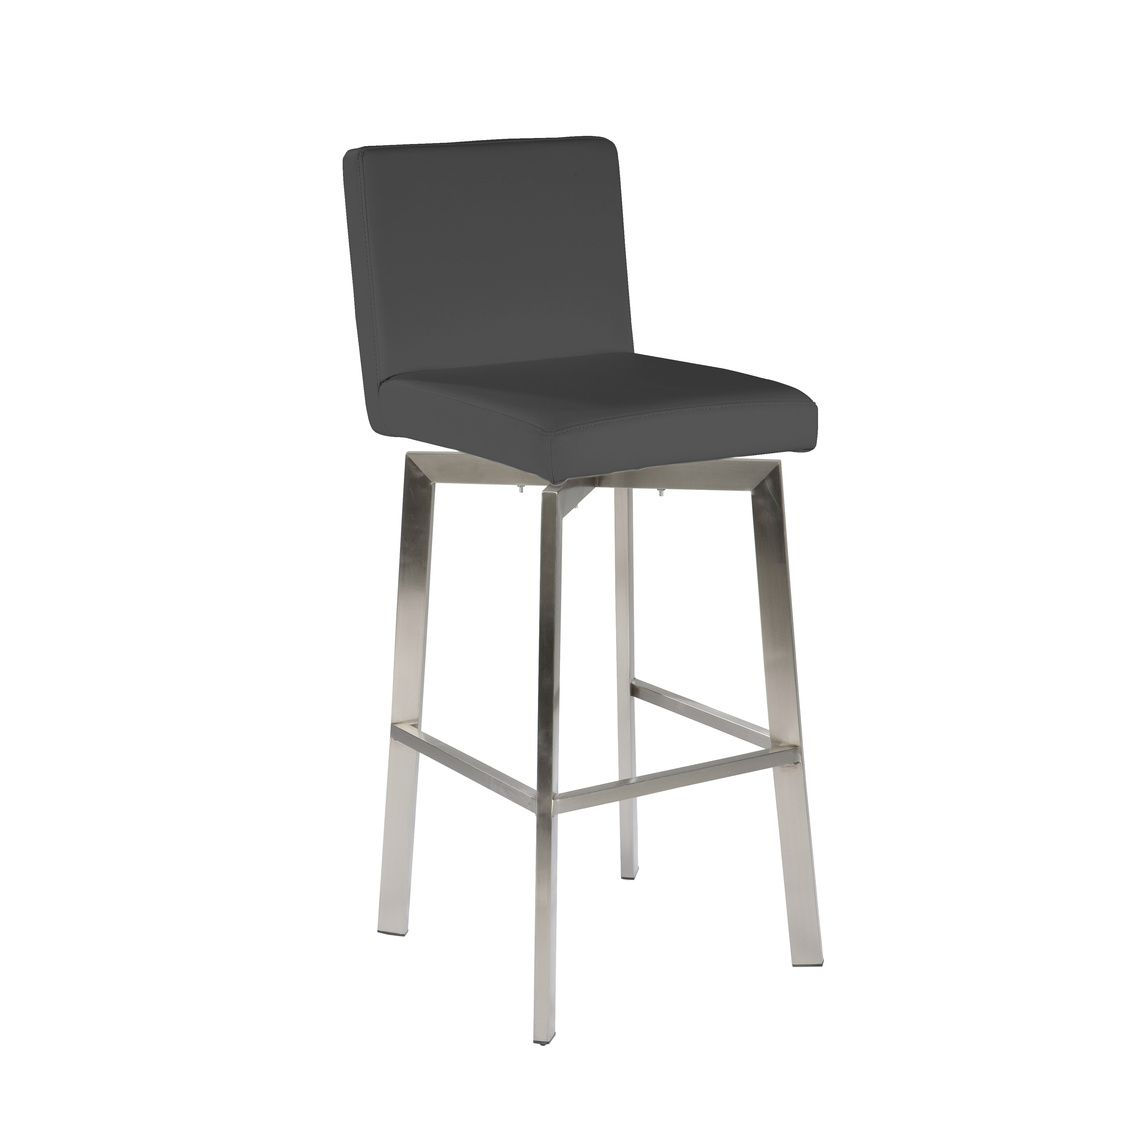 Bar Stools Counter Stools Rme 1038 02 Bar Counter Stool With Brushed Stainless Steel Frame Artefa Moe S Home Collection Bar Stools Swivel Counter Stools